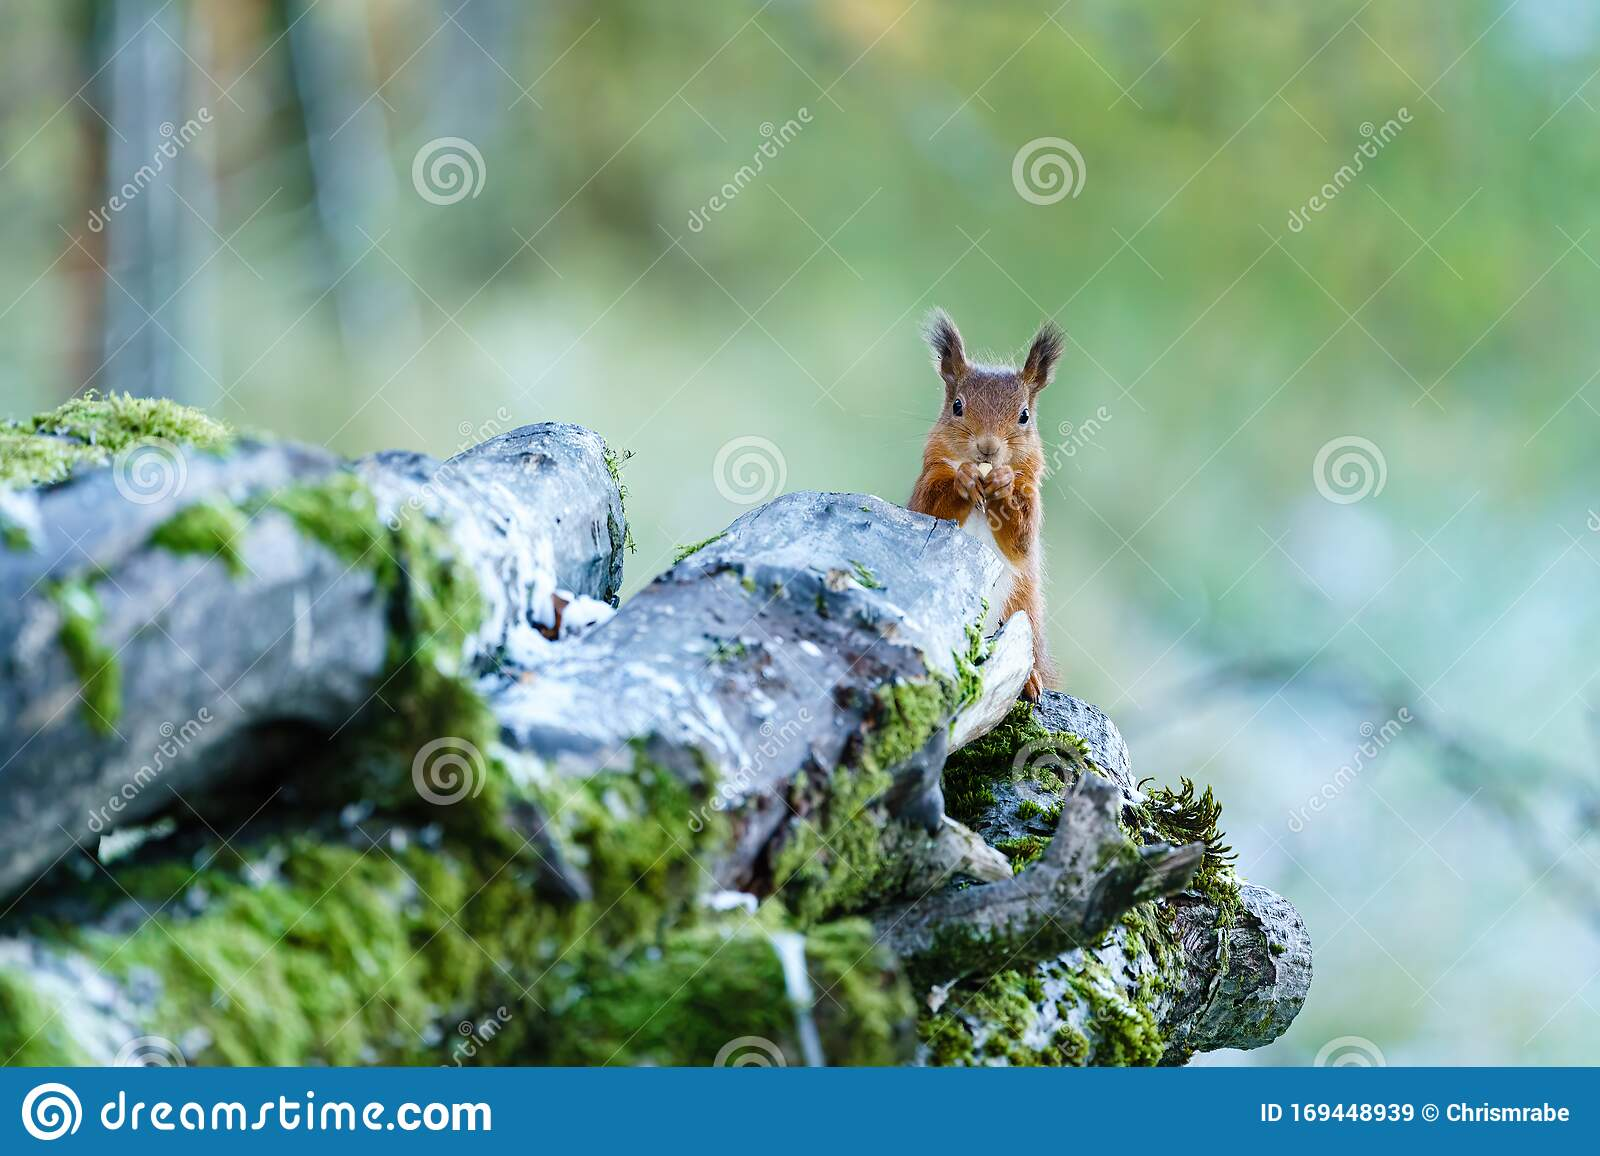 Red Squirrel Sciurus Vulgaris Nibbling On A Nut Standing Behind Some Logs Perthshire Scotland Stock Image Image Of Animals Mammals 169448939